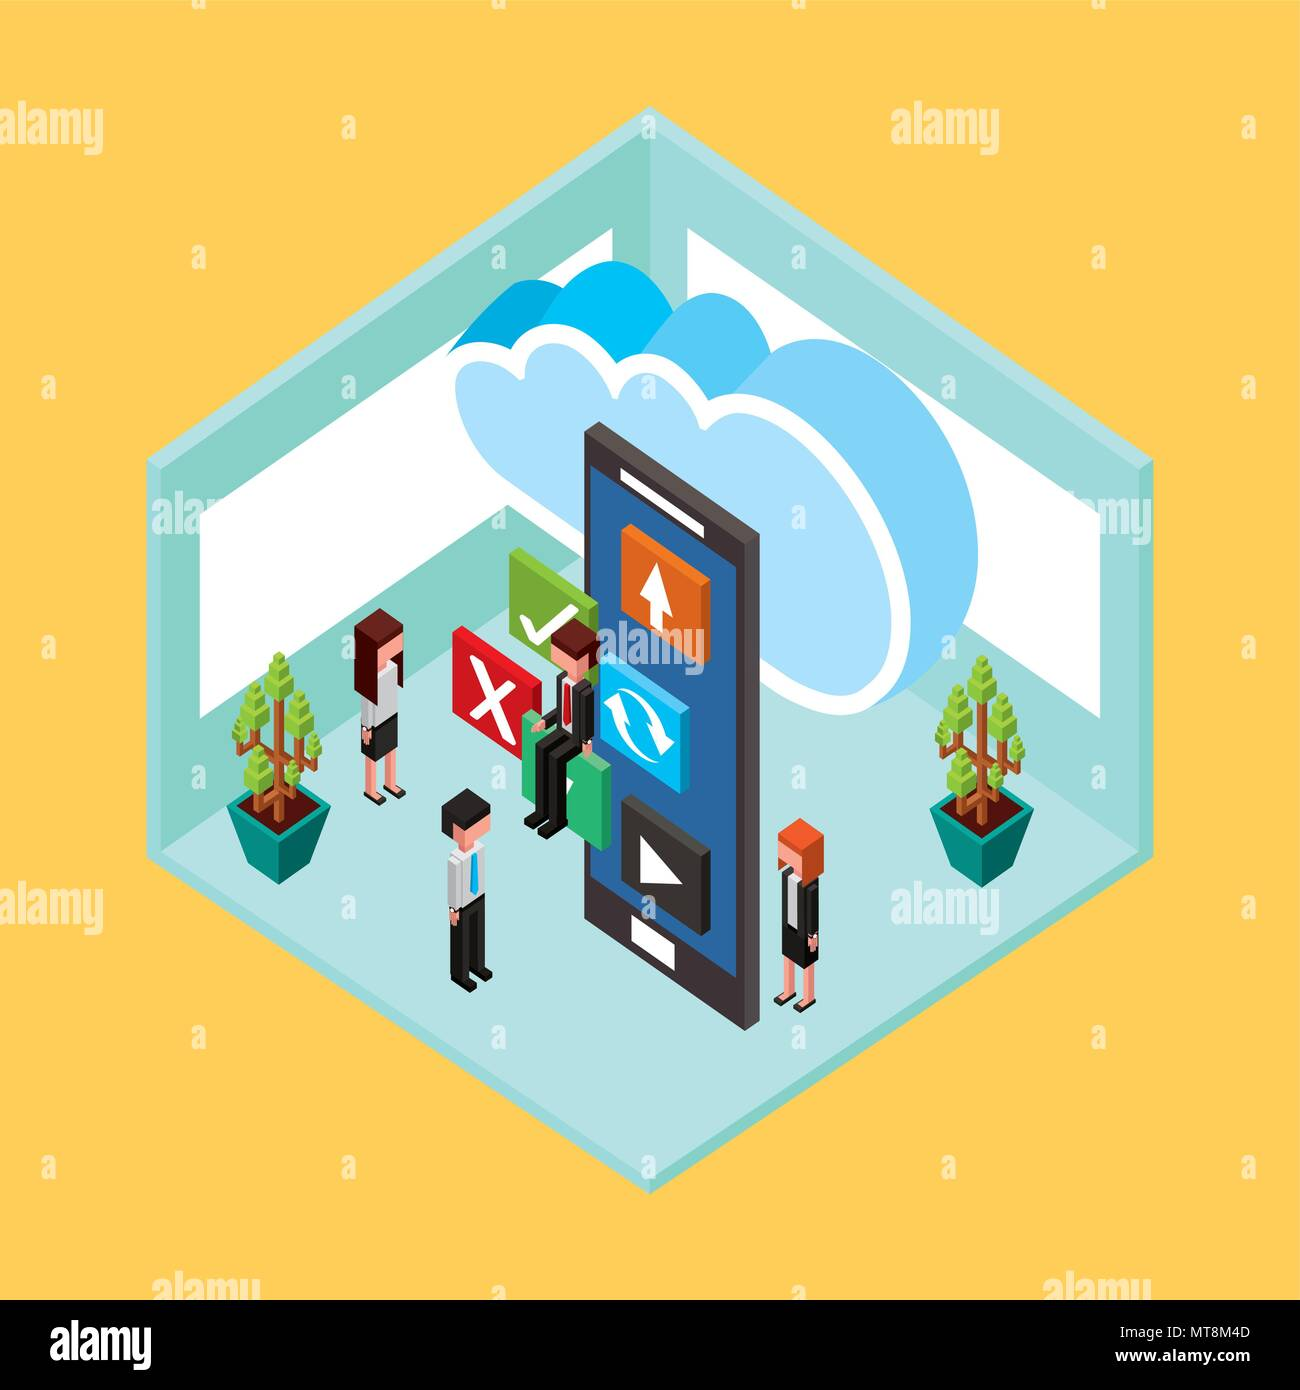 people cloud computing storage - Stock Image